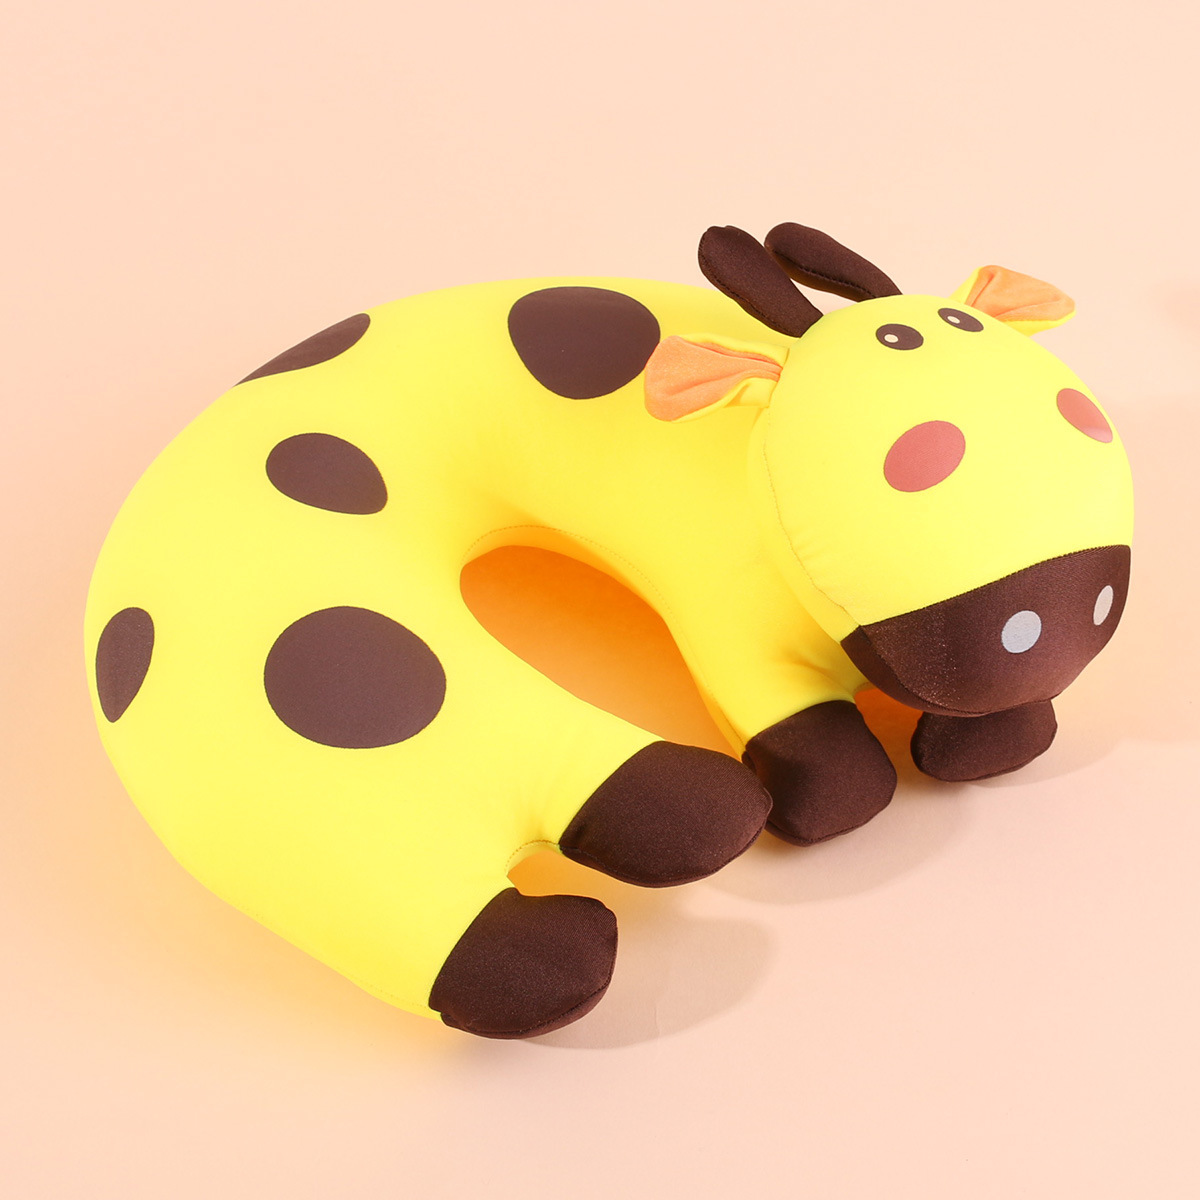 Horse shaped pillows for children - Baby Pillow Animal Cow U Shape Pillow For Babies Yellow Neck Protection Pillows China